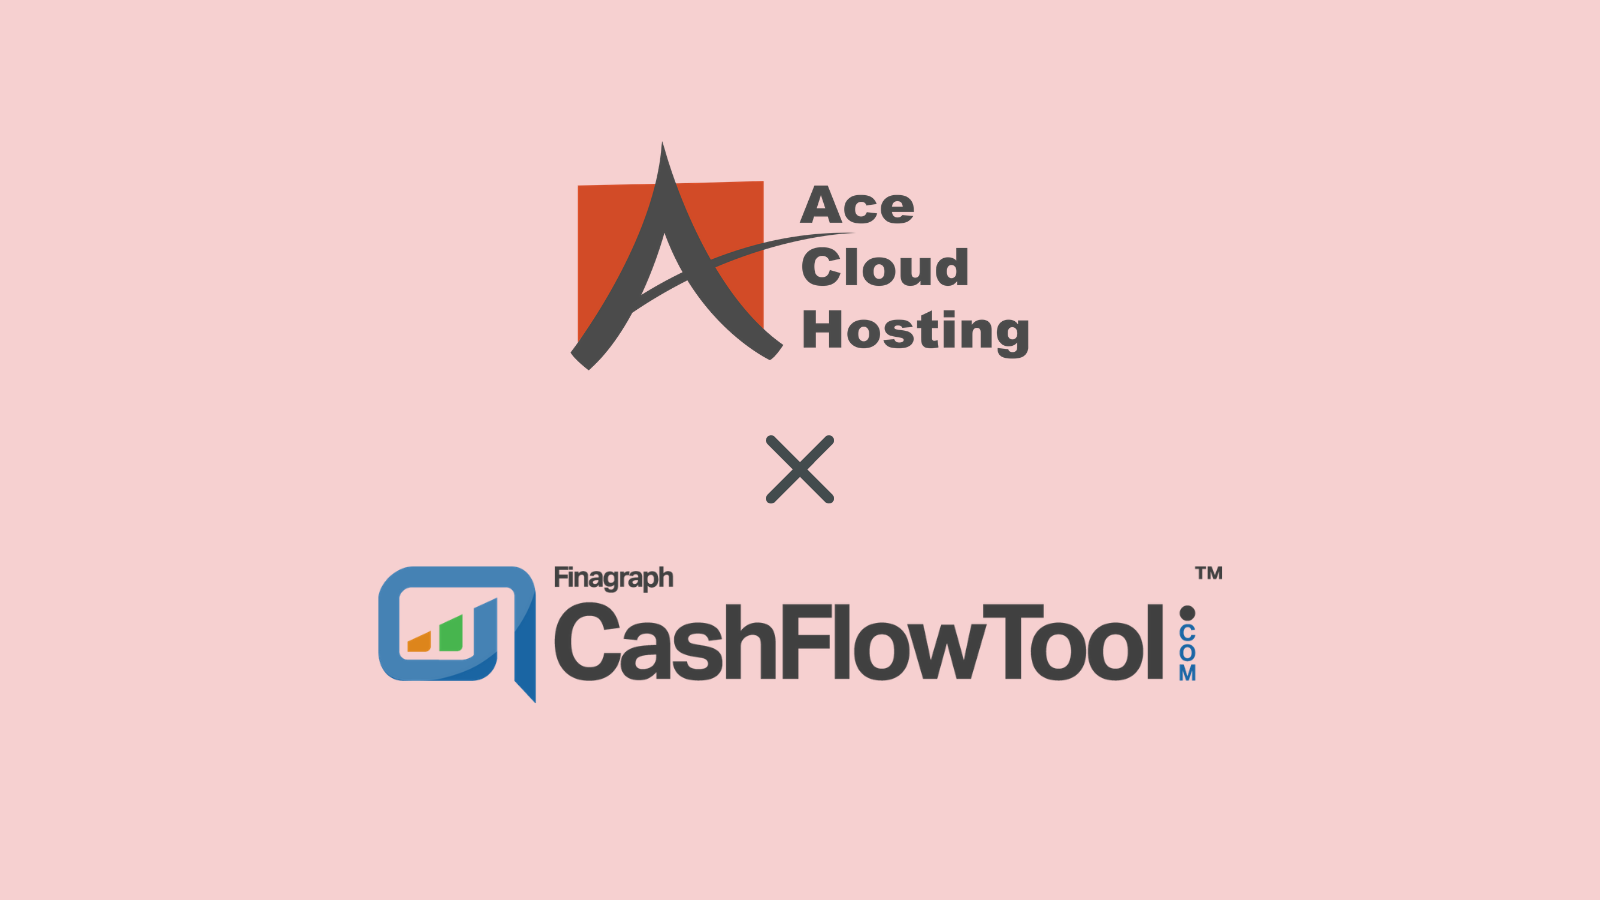 acecloudhosting-chasflowtool